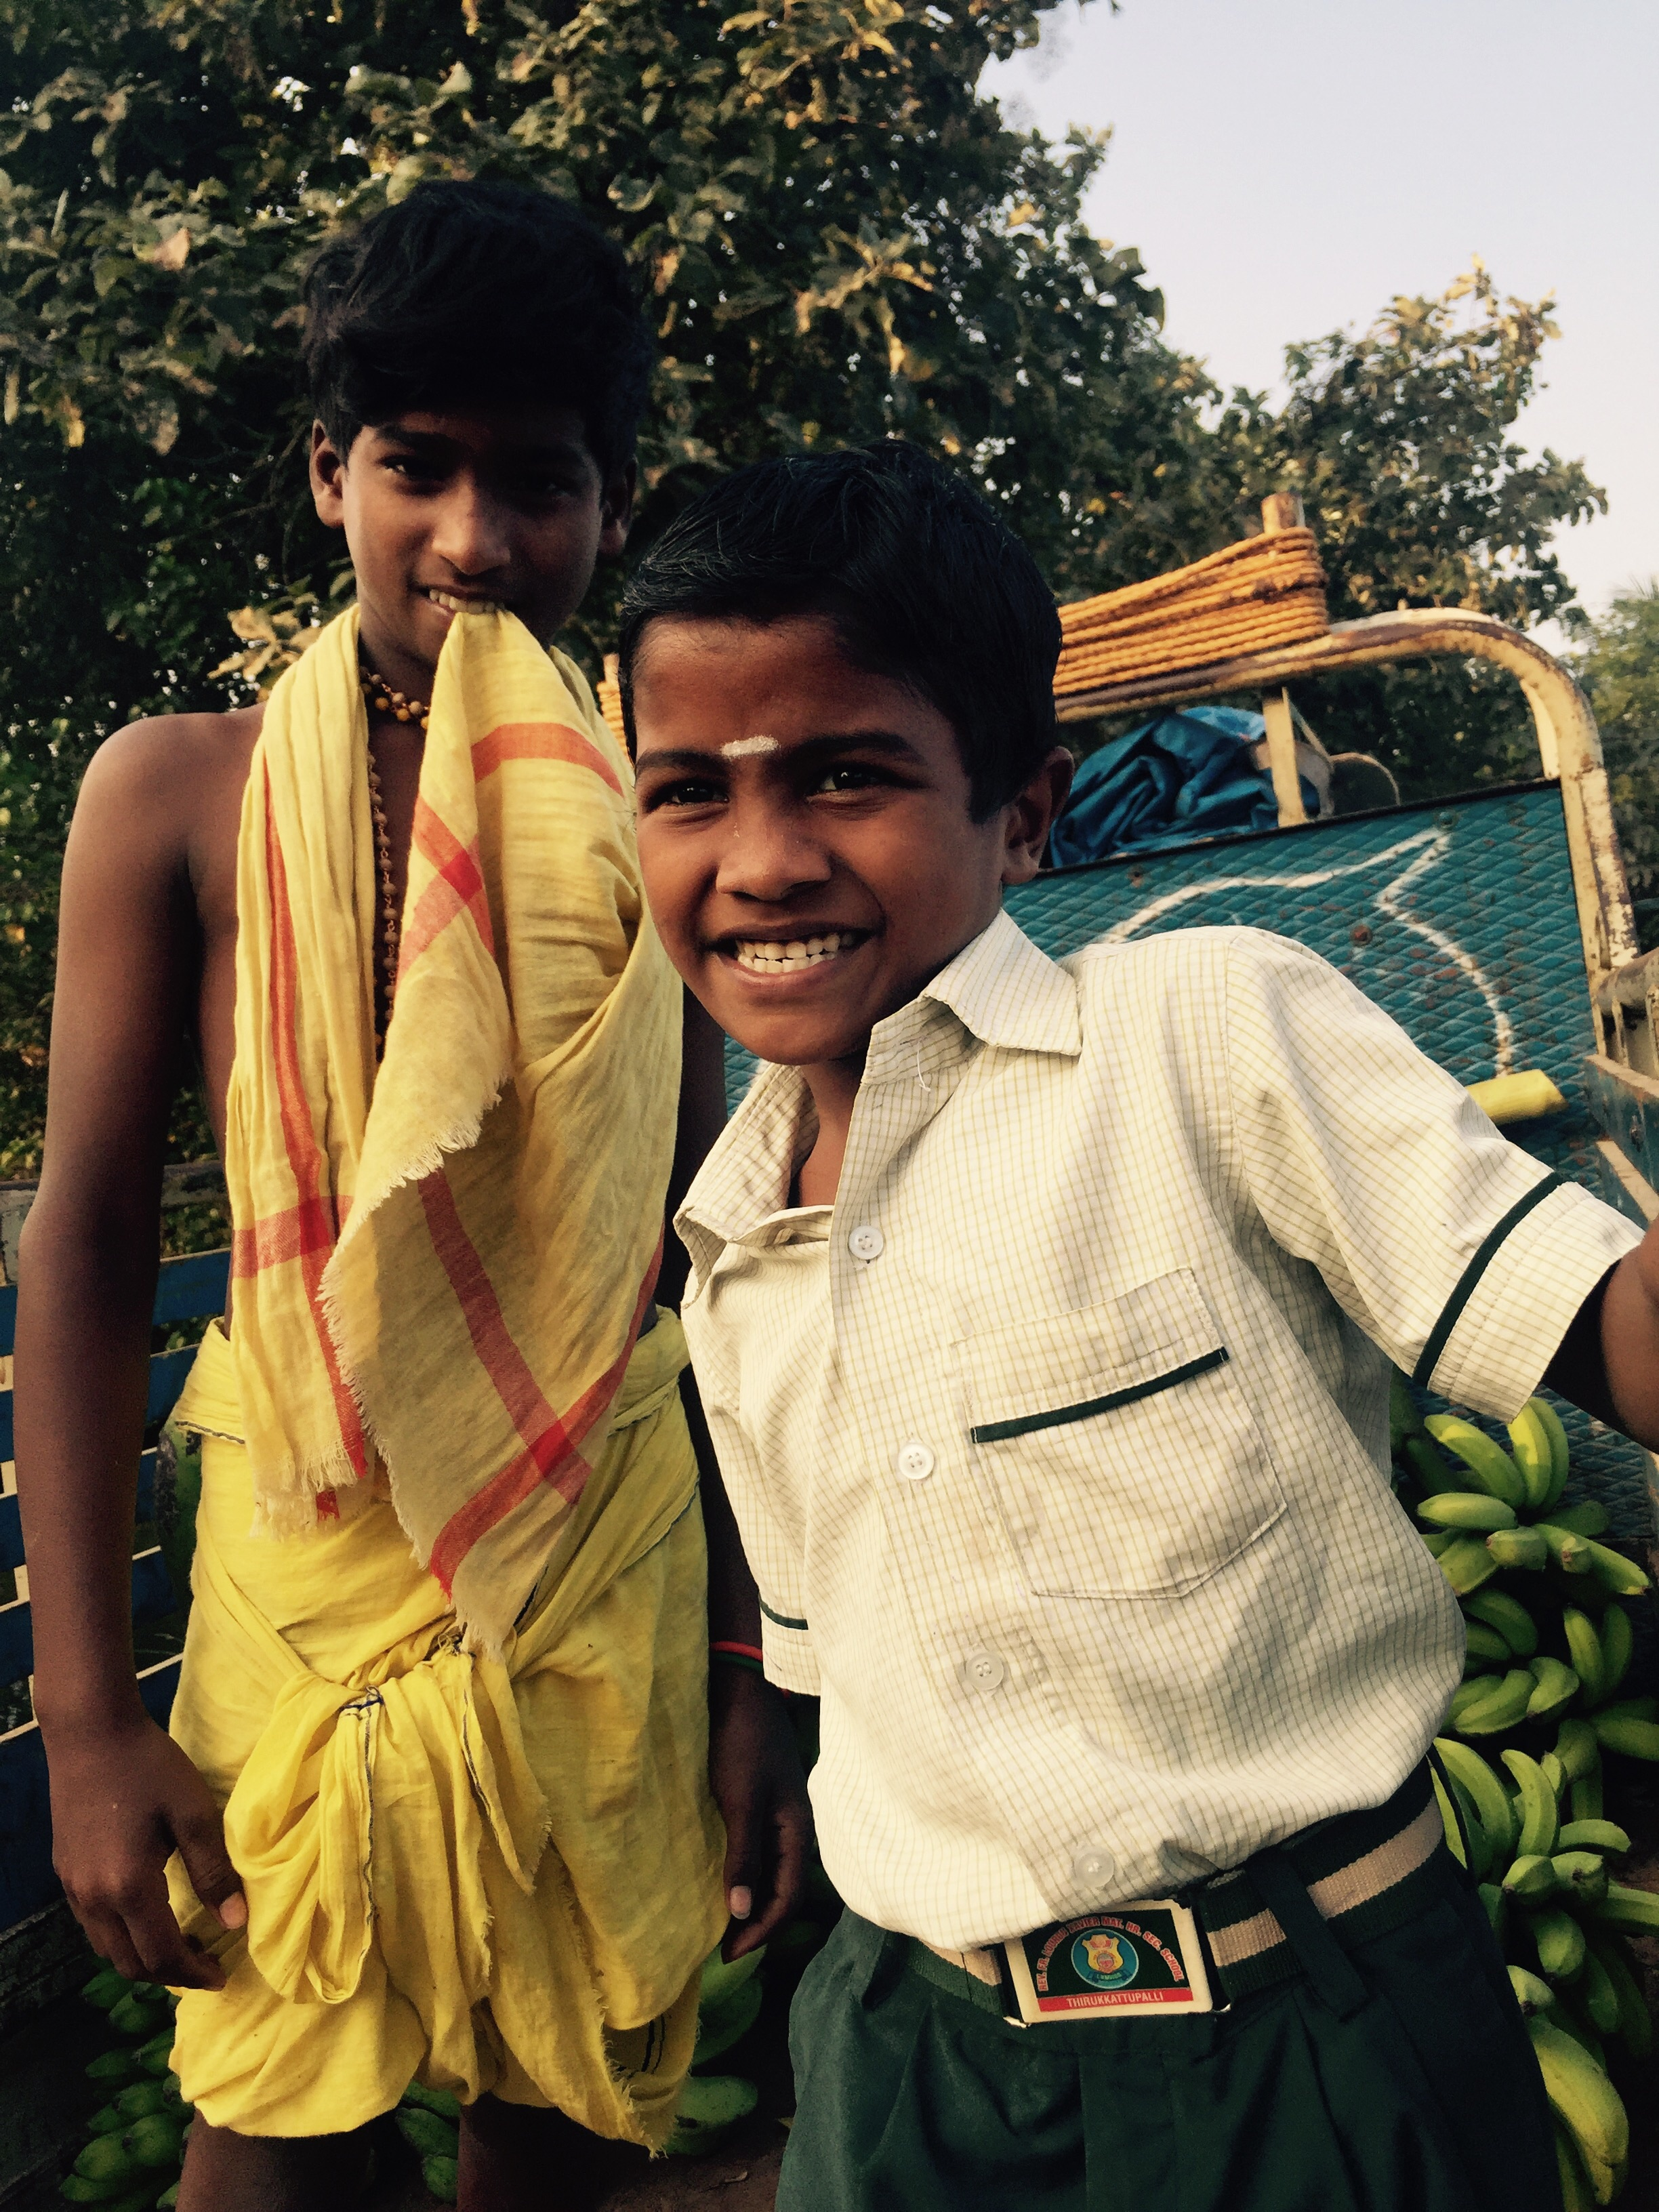 Two Kids. One going to school, the other out picking bananas in the fields